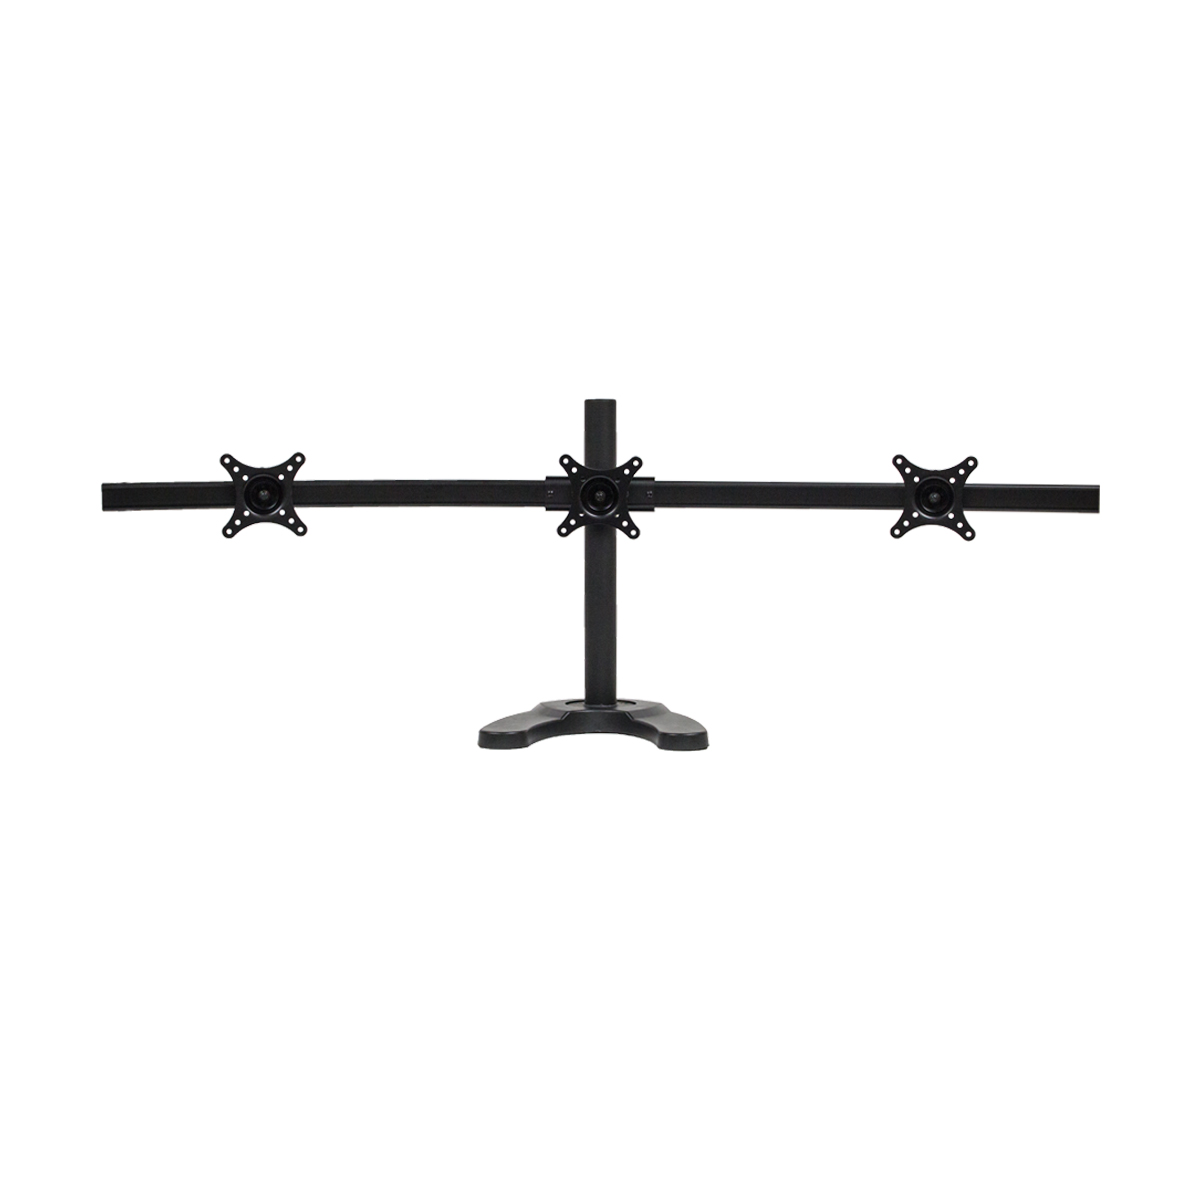 Triple LCD 3 Monitor Stand Desk Mount Adjustable Curved Free